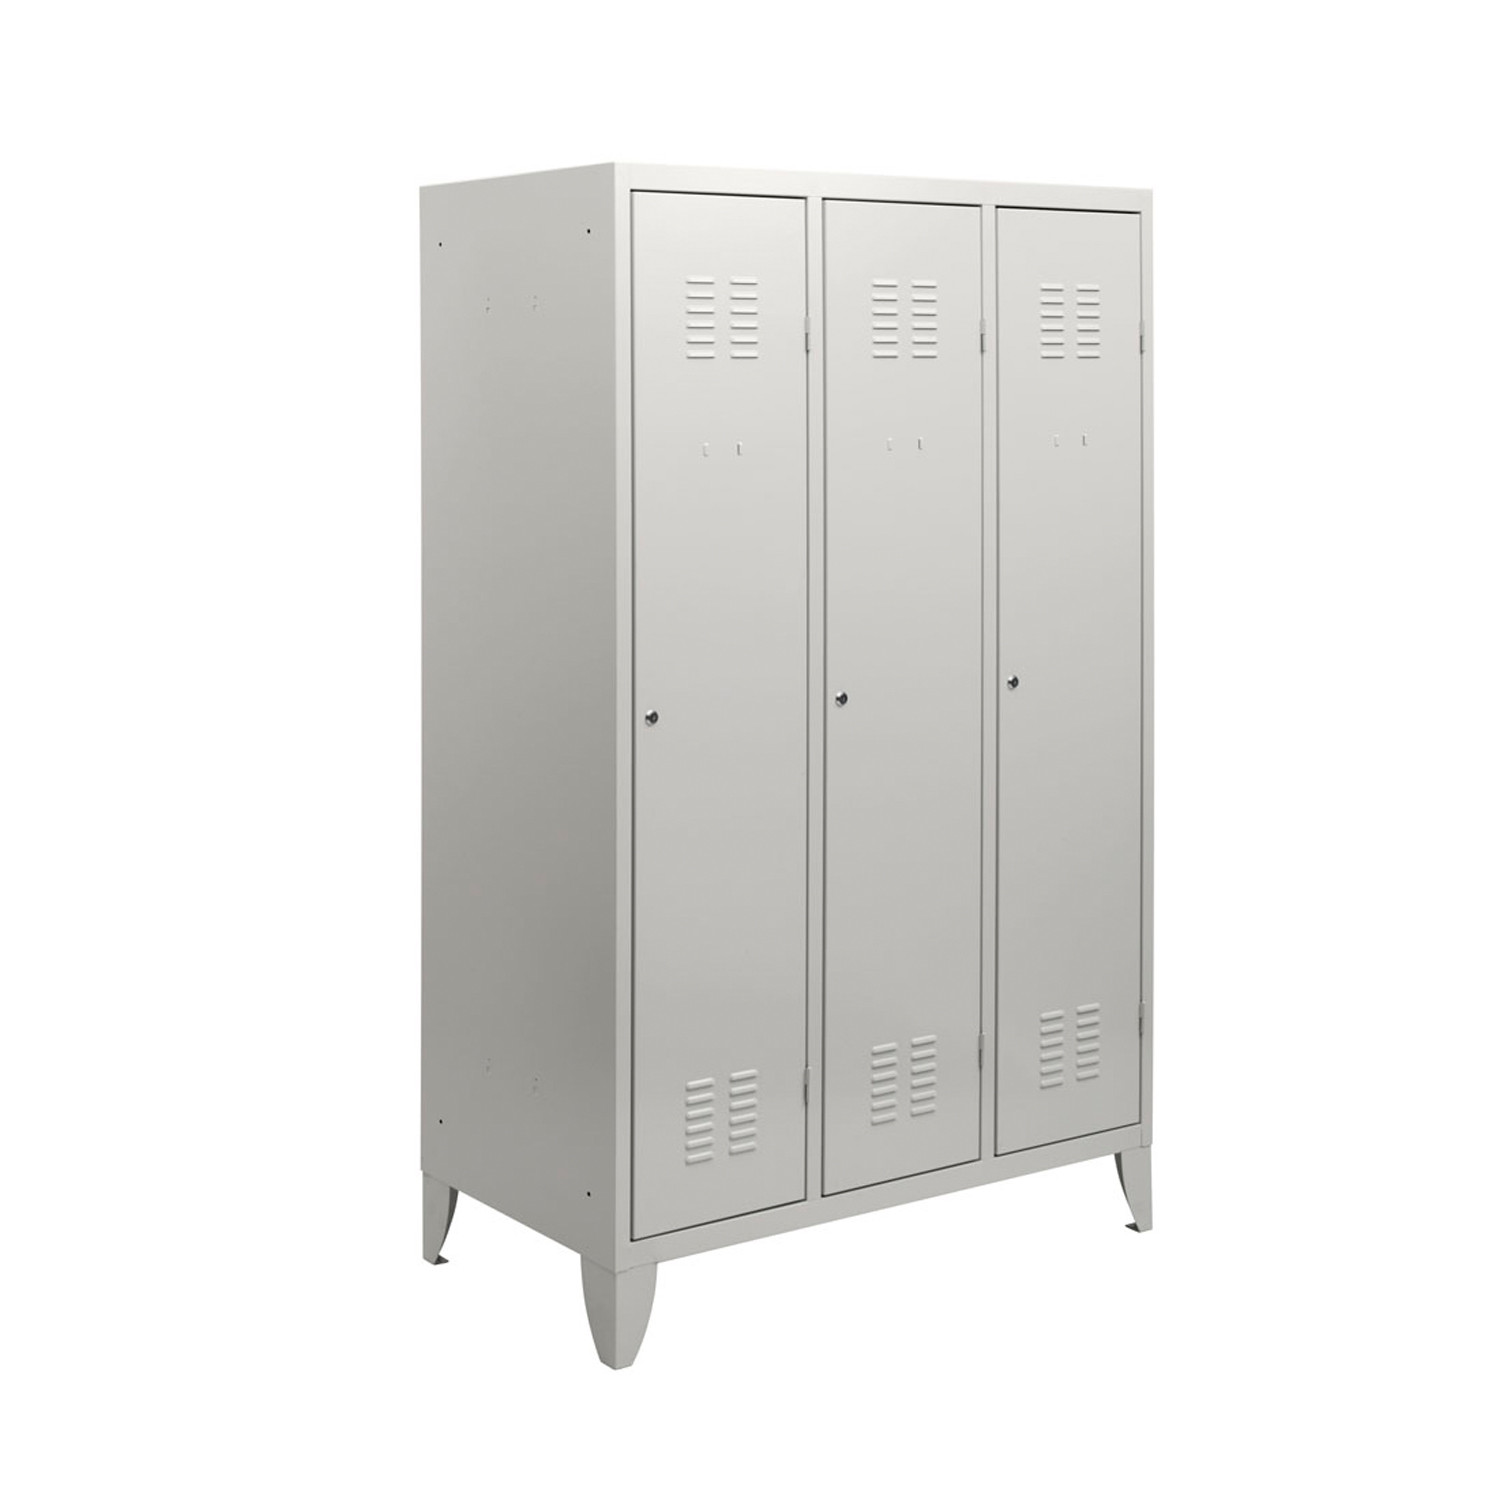 LockerLine Lockers - 3 Doors